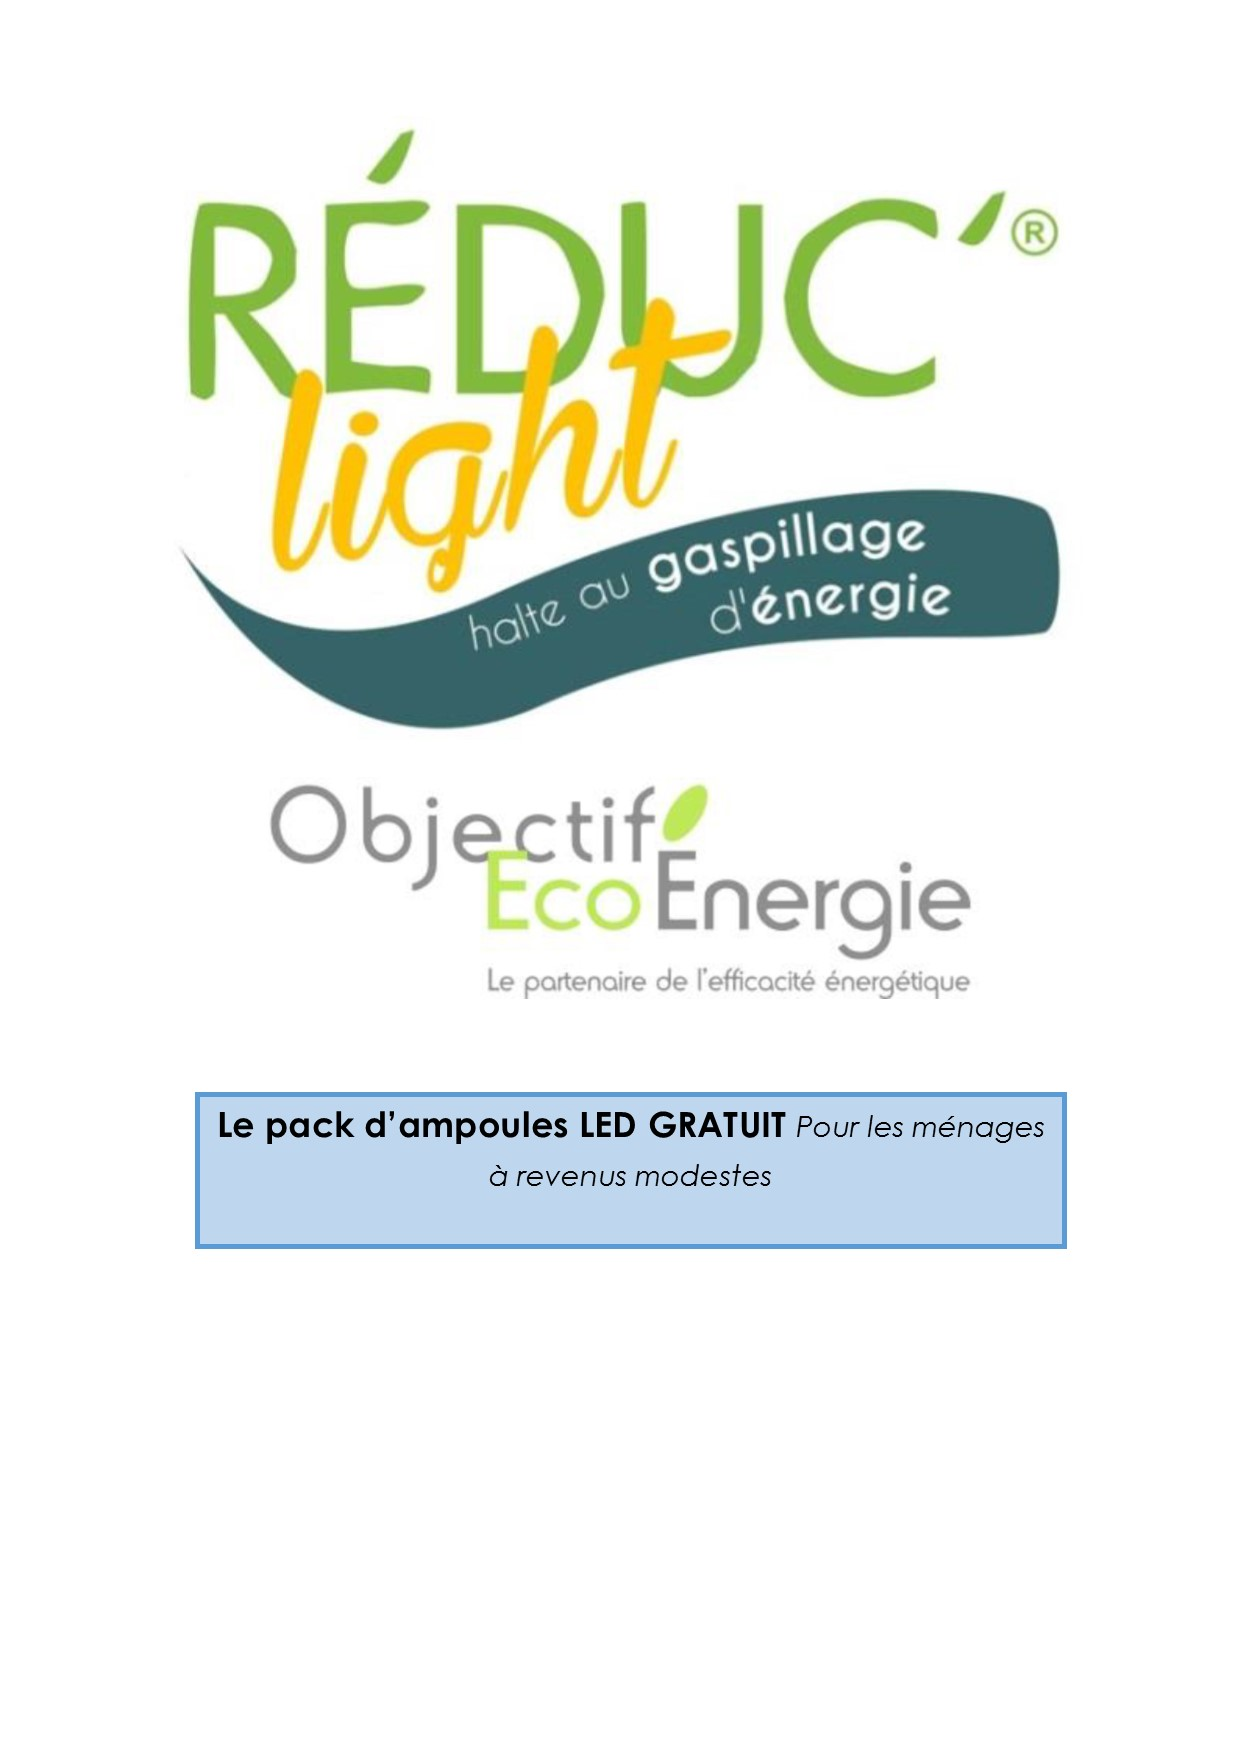 Programme Réduc'Energie : prolongation du délai d'inscription